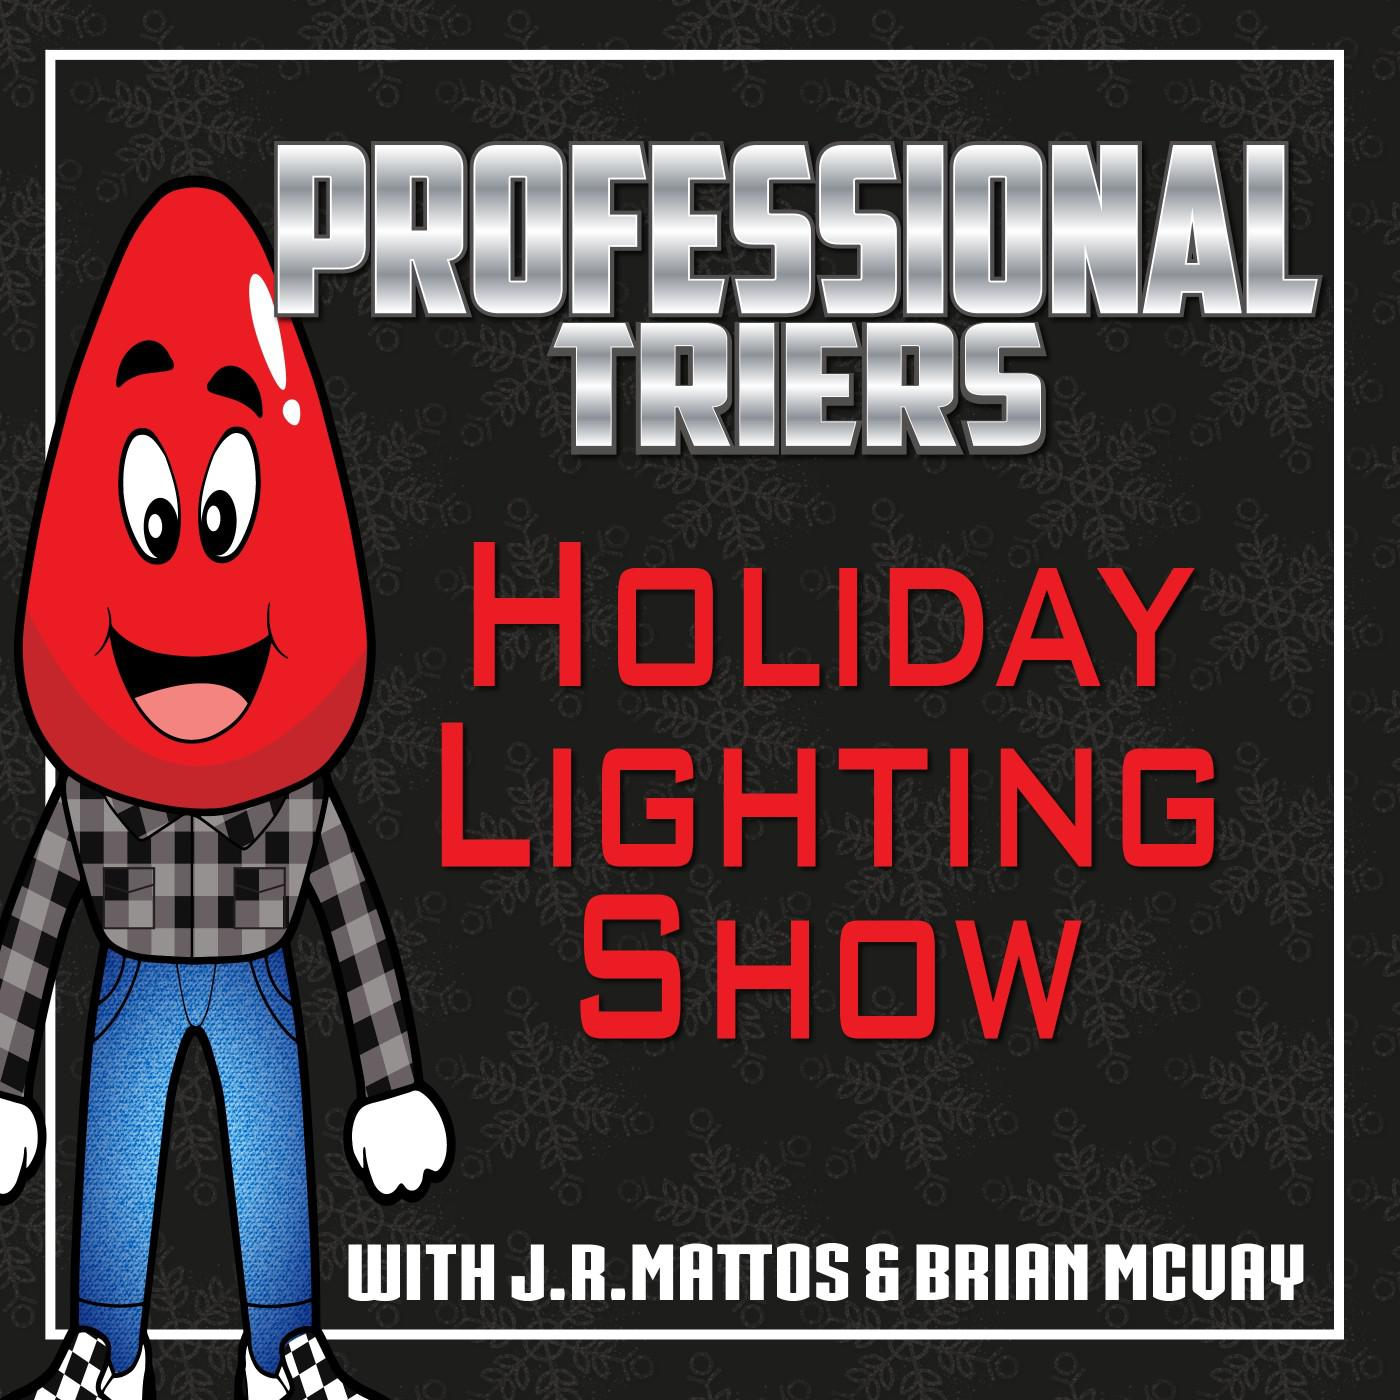 The Great Christmas Light Fight 2020 Aromin Professional Triers (podcast)   Professional Triers | Listen Notes